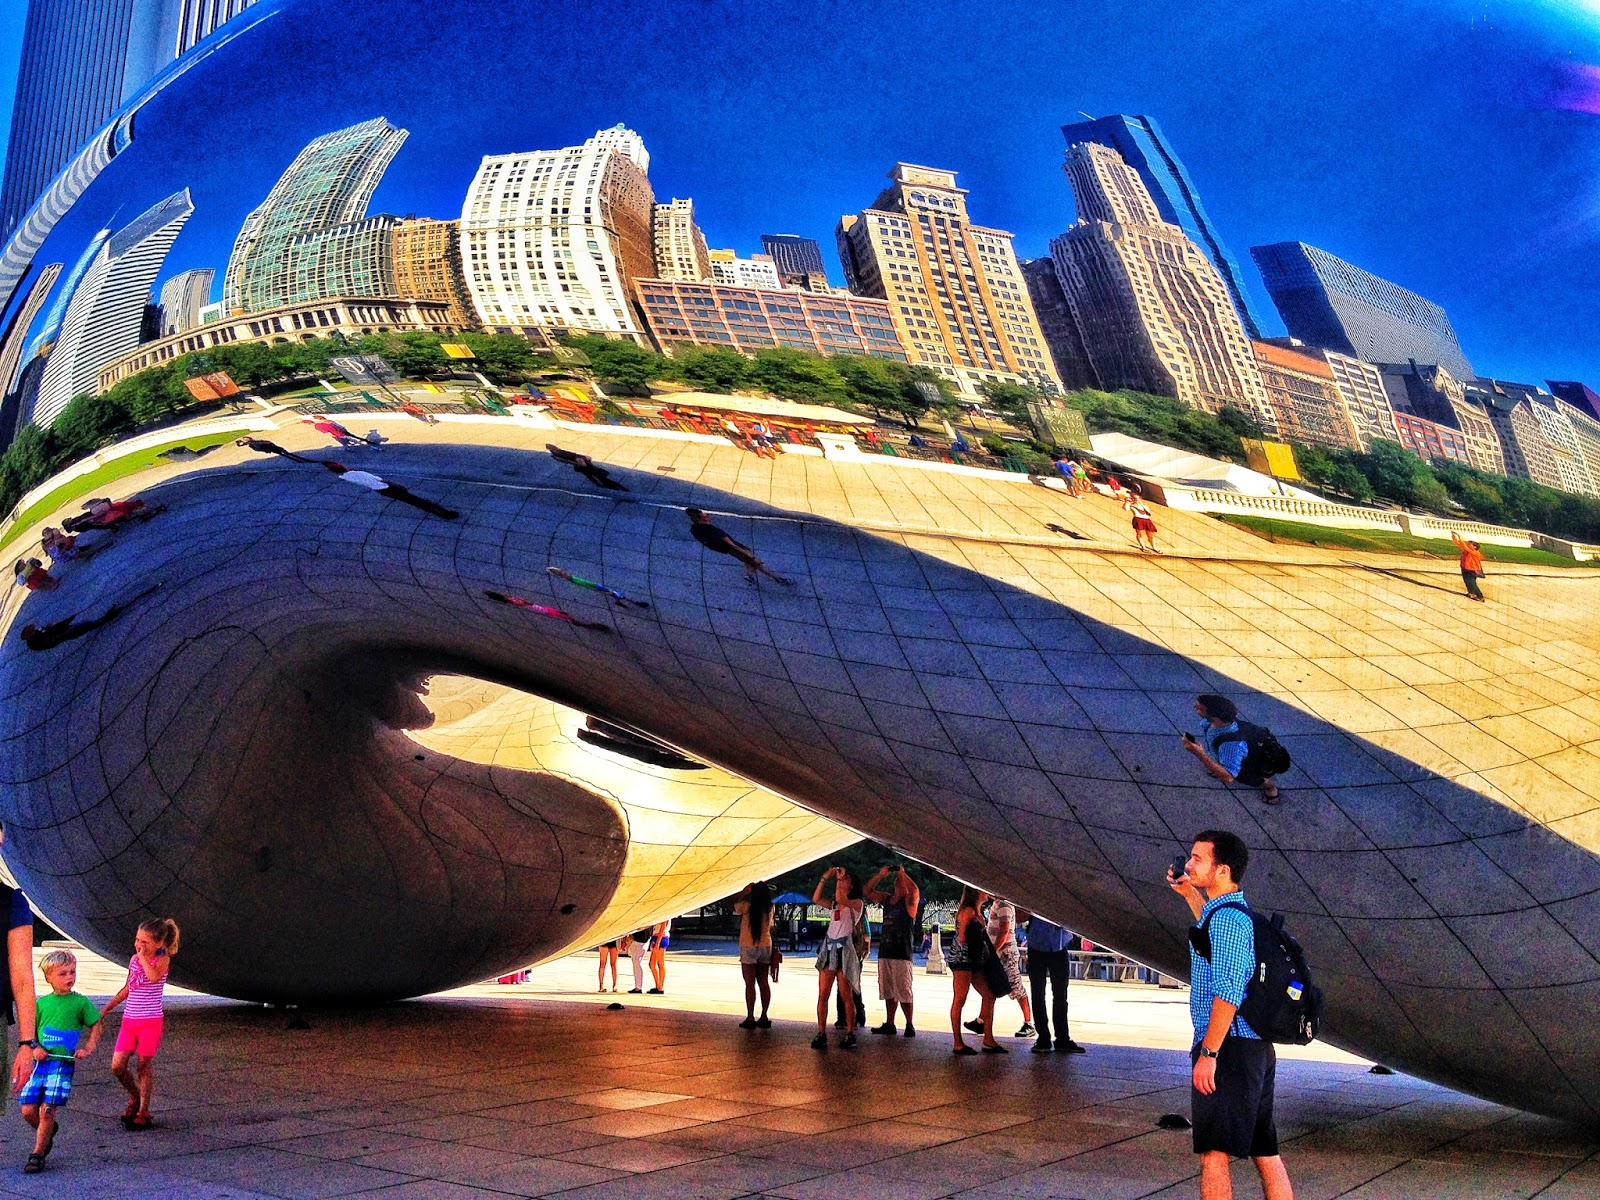 America Roadtrip Day 4 | Chicago Pt. II | Wildberry Brunch, The Bean, Sears Tower, Sight-Seeing